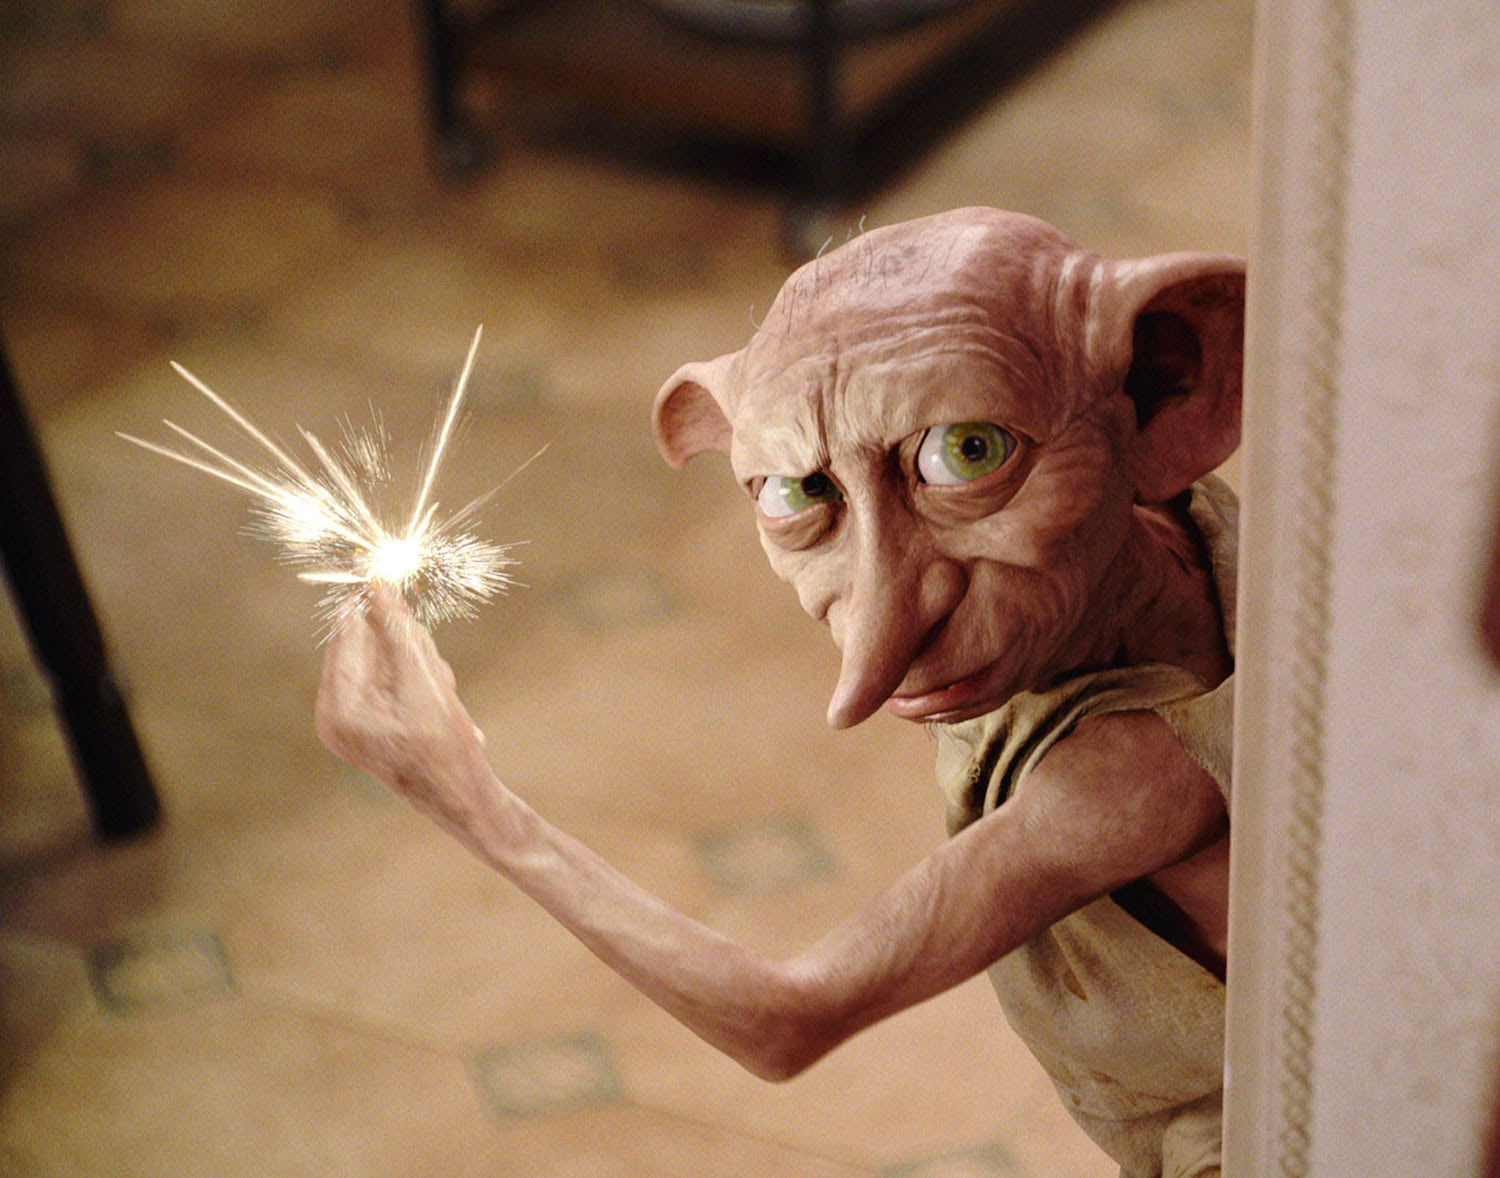 Dobby snaps his fingers